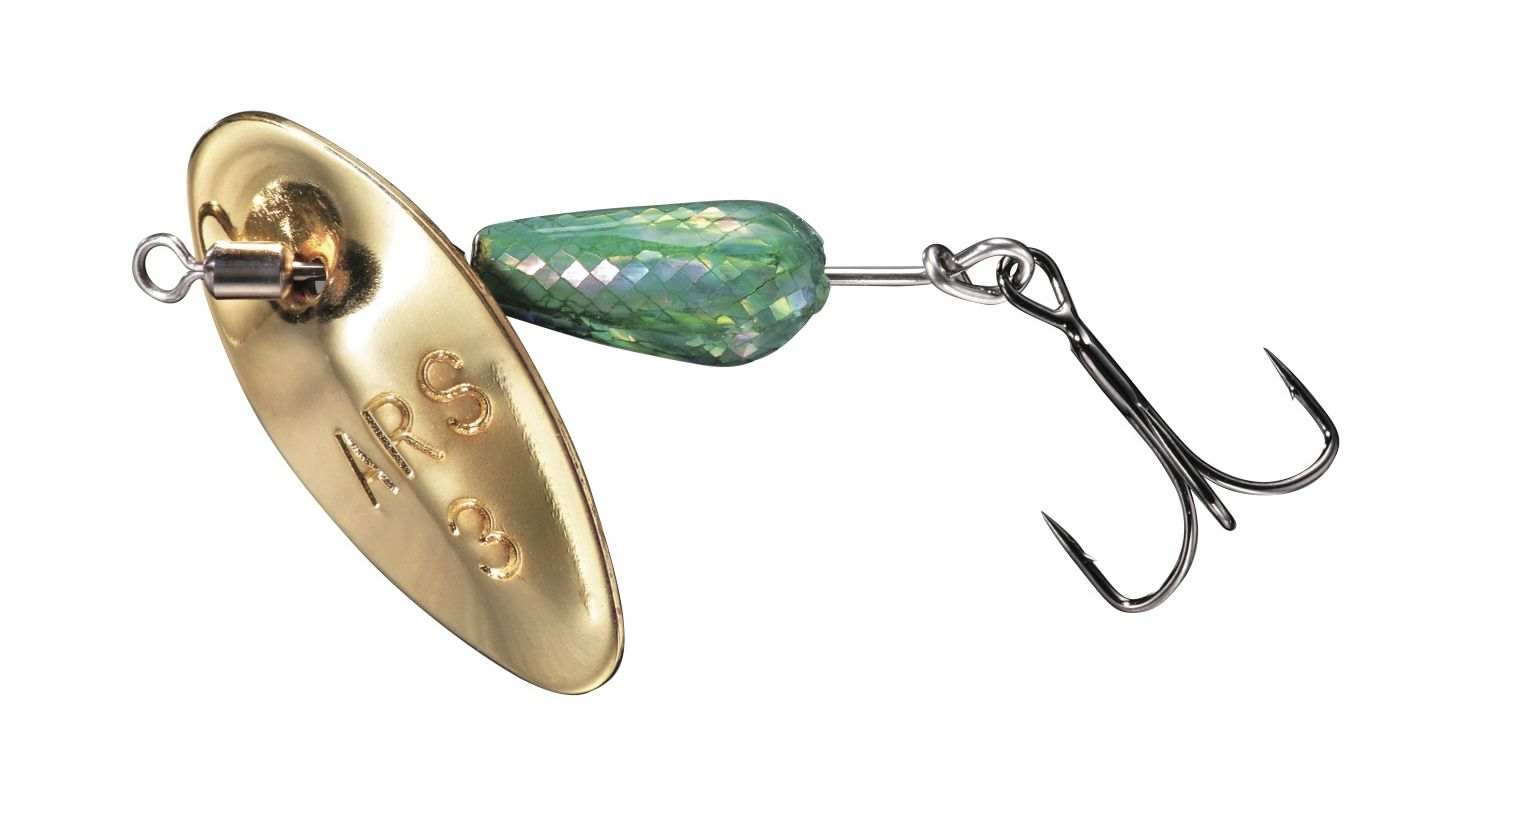 Блесна Smith AR Spinner Trout Model Shell 3,5гр